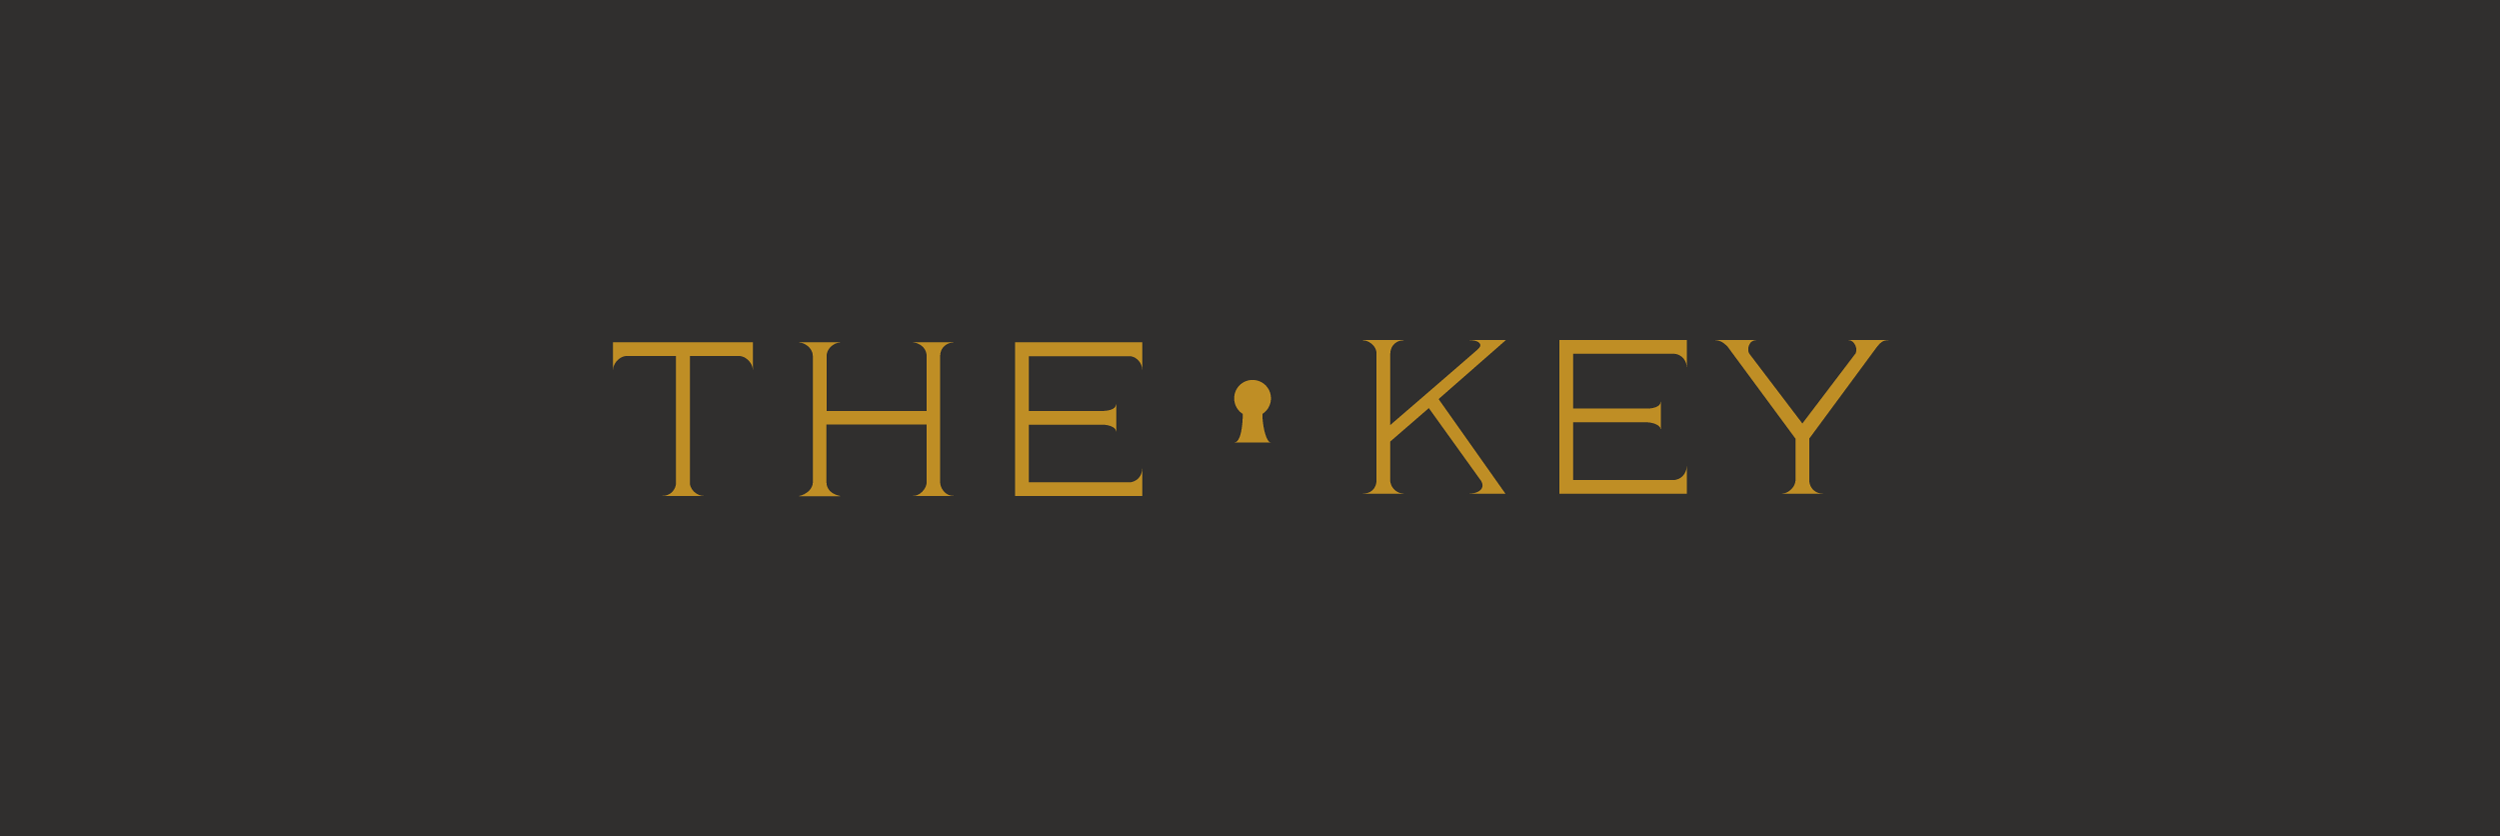 the-key-header.png